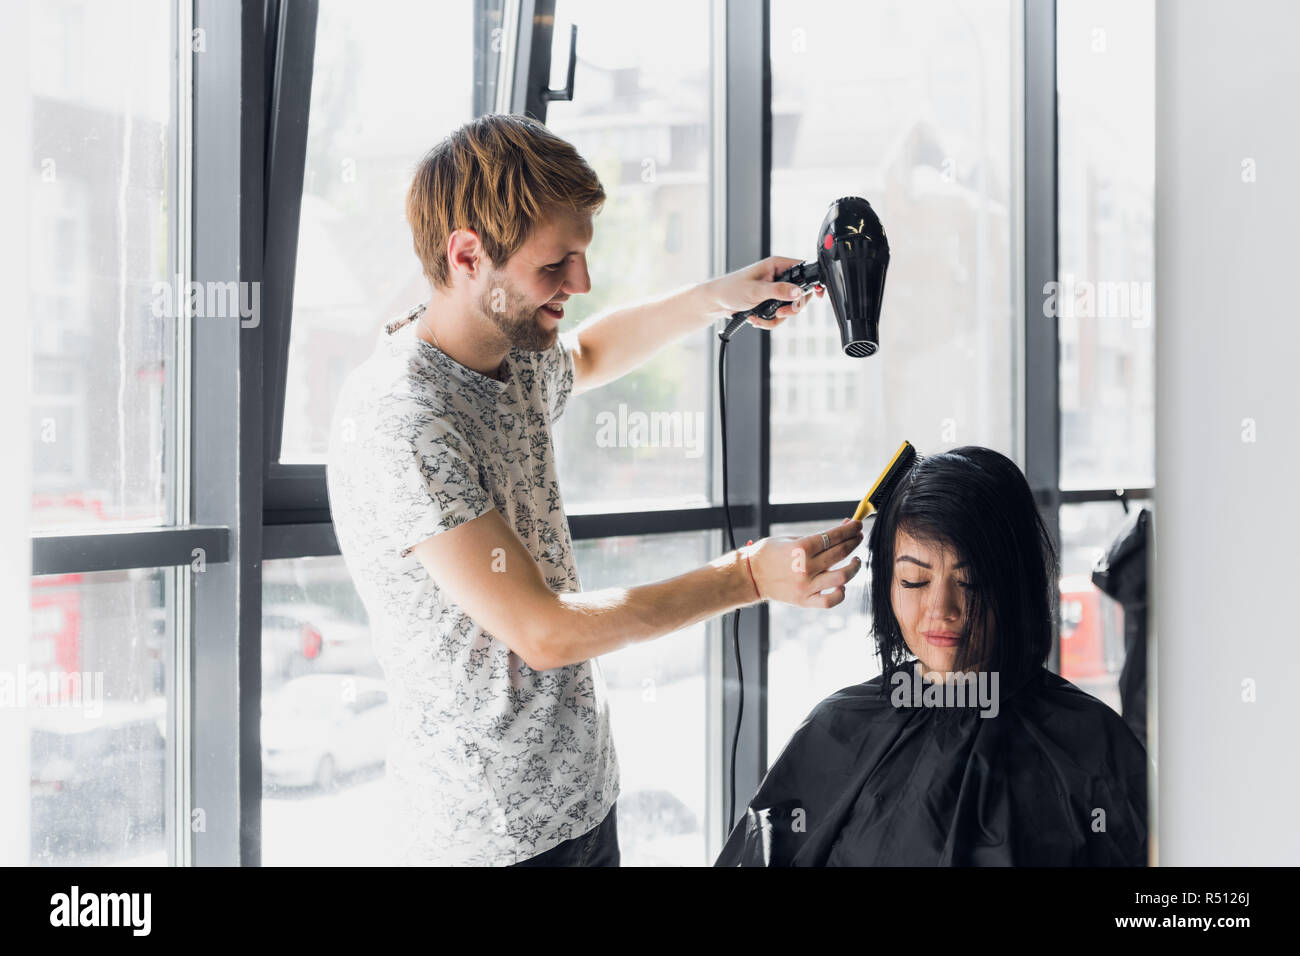 Smiling woman getting haircut by handsome hairdresser - Stock Image